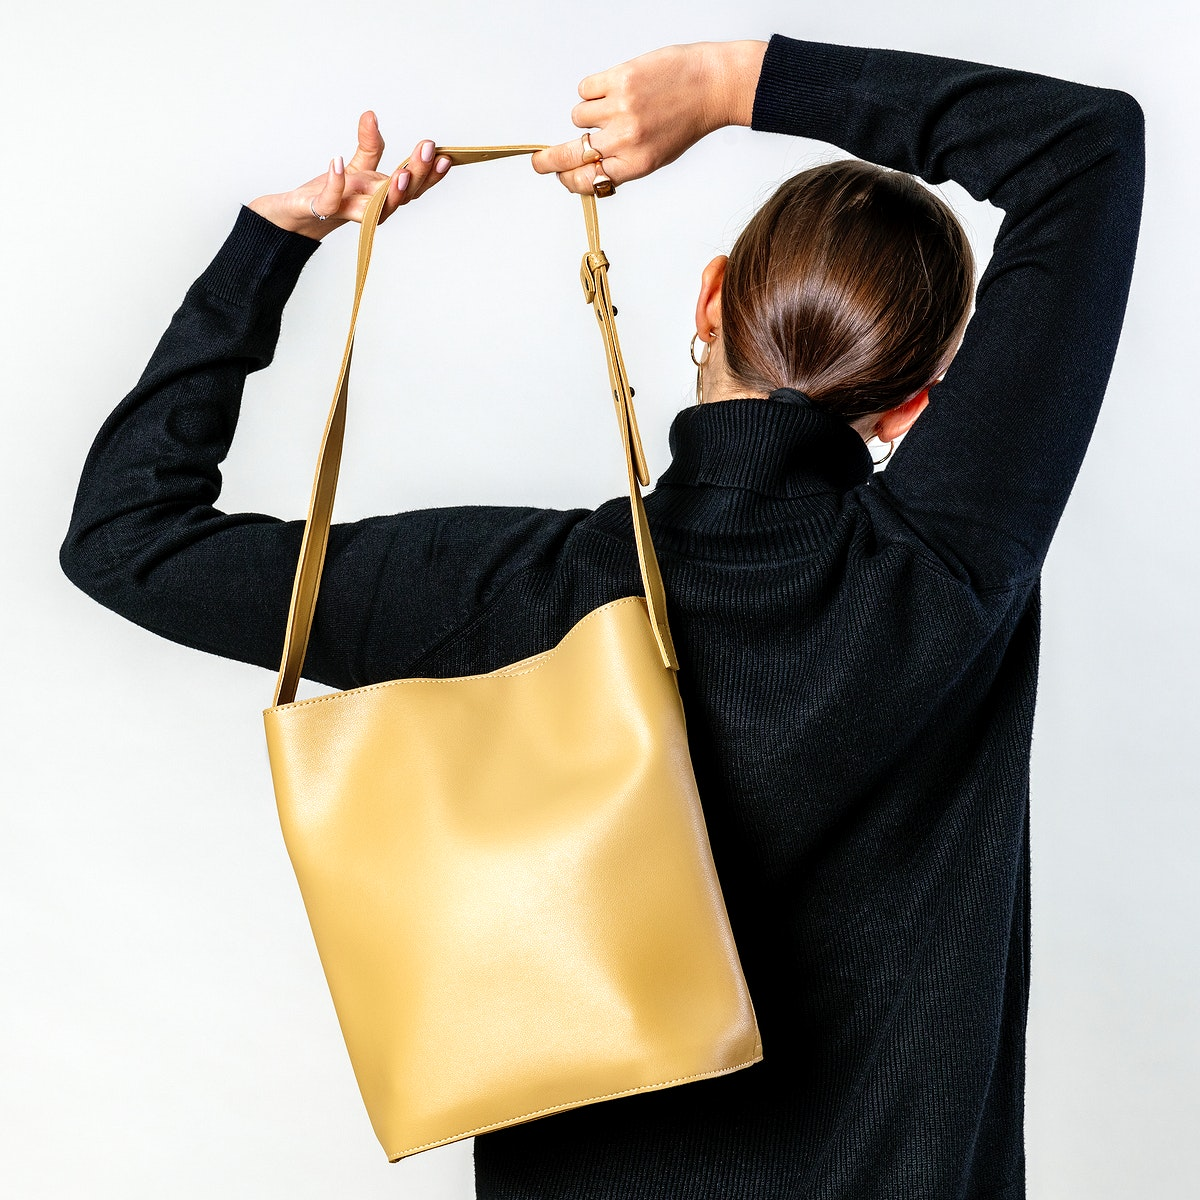 Woman from behind with a yellow cross body bag